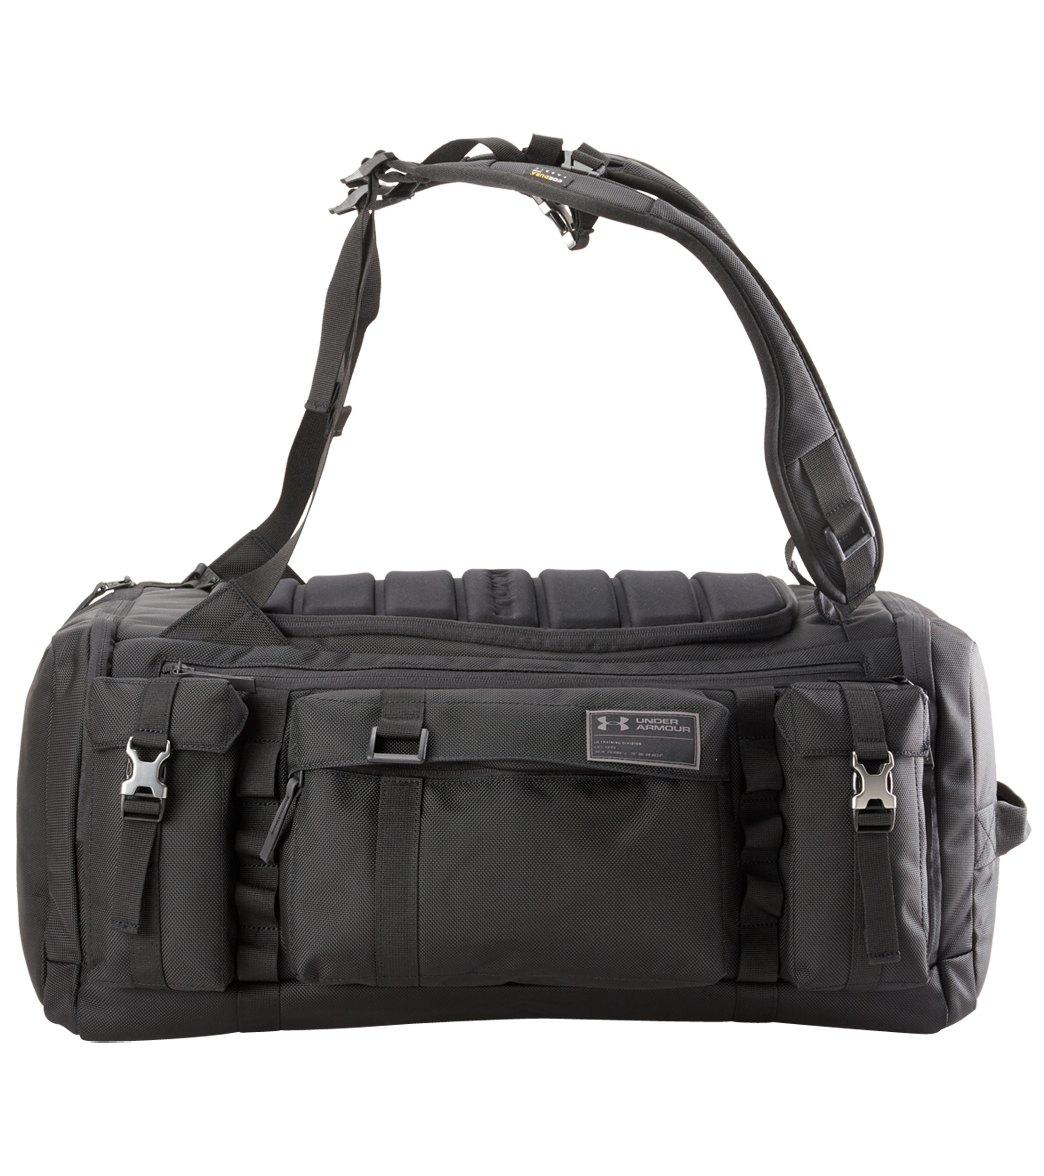 4a5723c921 Under Armour Men s Cordura Range Duffel Bag at SwimOutlet.com - Free  Shipping